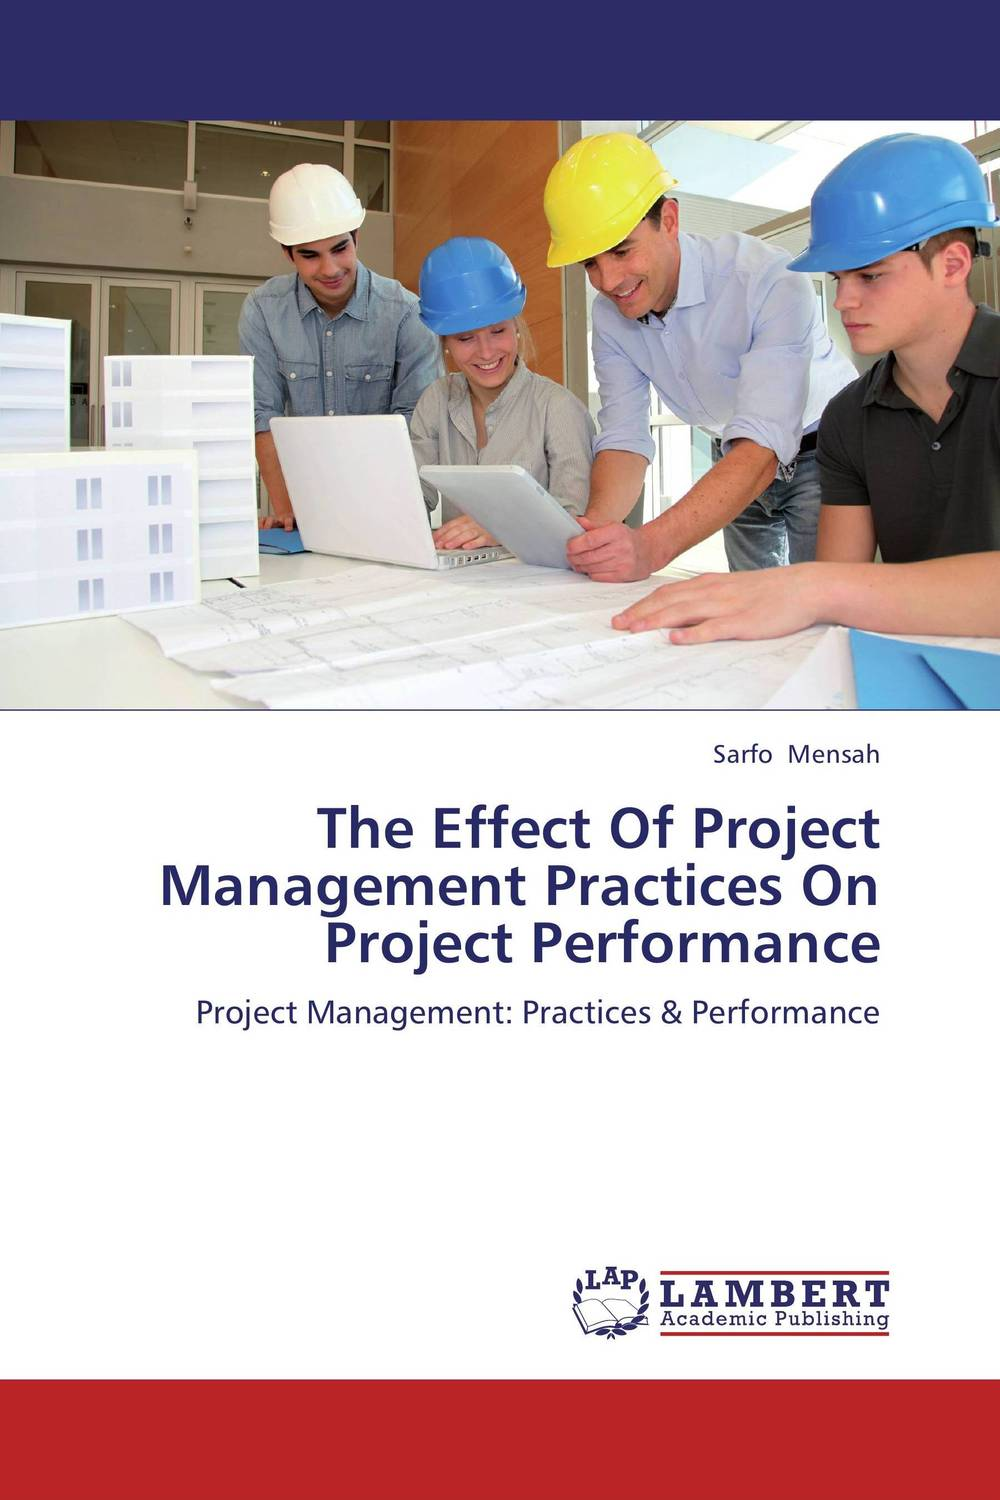 The Effect Of Project Management Practices On Project Performance